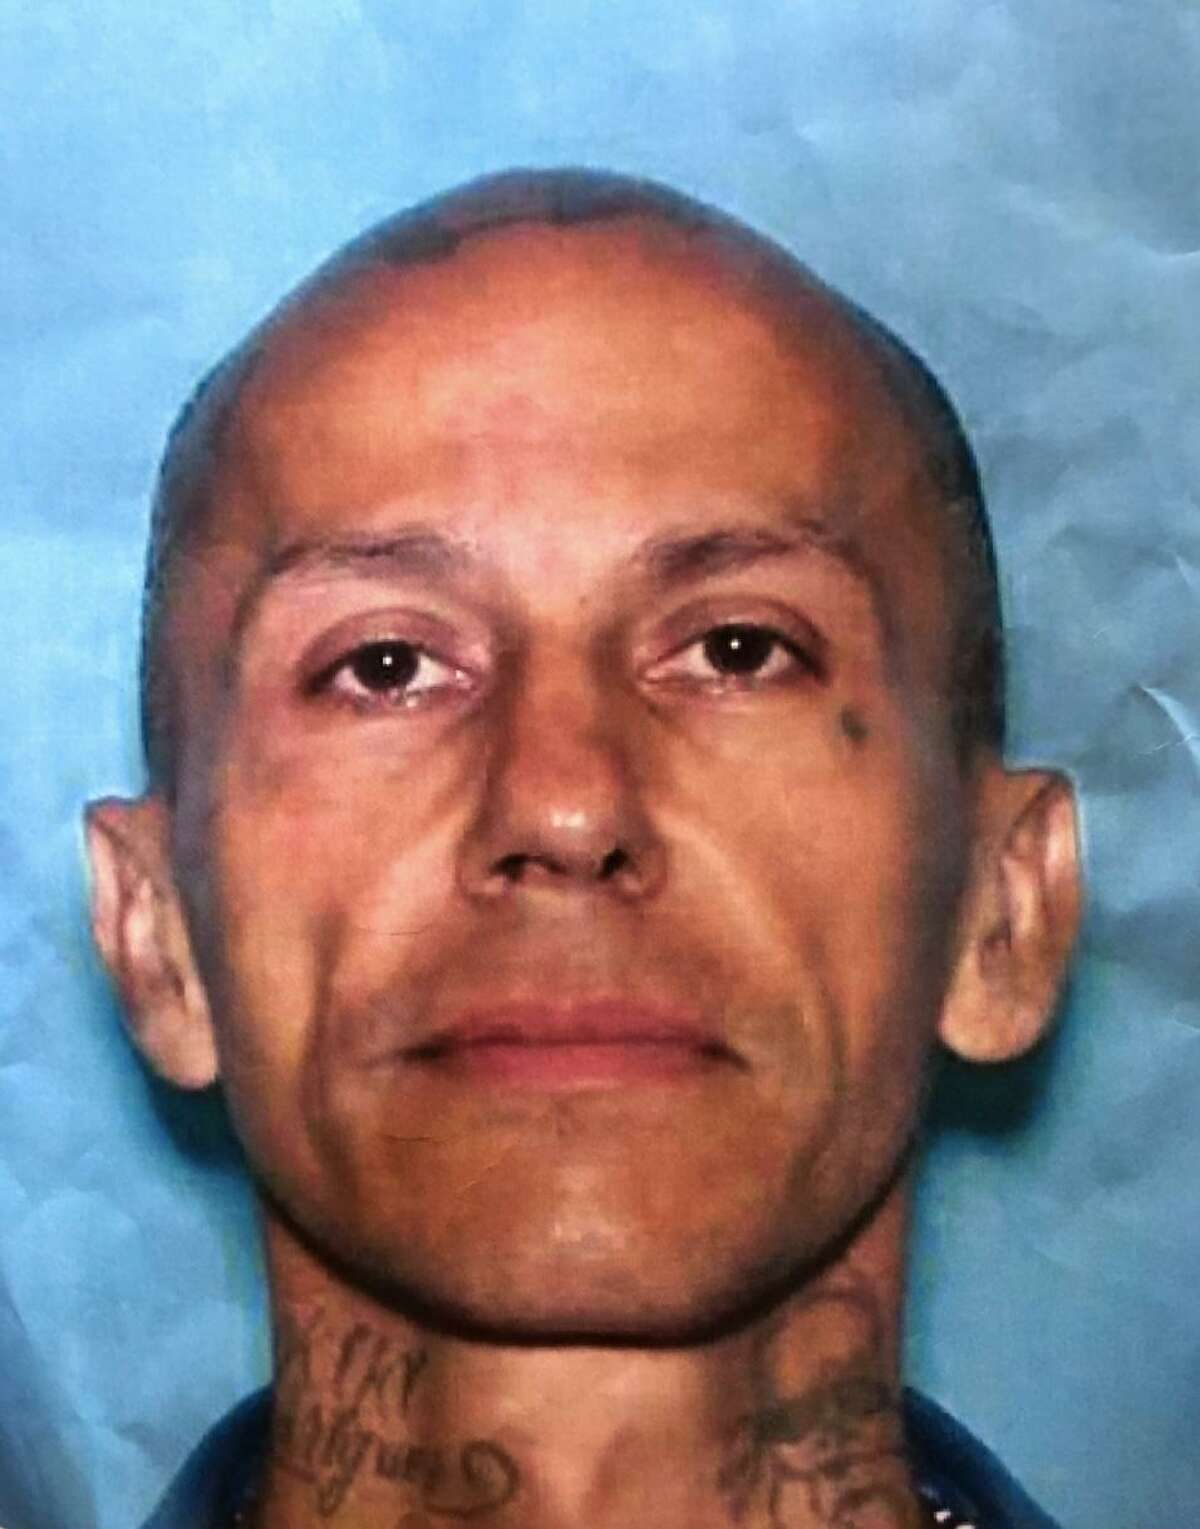 Jose Gilberto Rodriguez, 46, is the suspect in three murders, the latest of which happened at a Mattress One store Monday afternoon along the North Freeway near Crosstimbers.